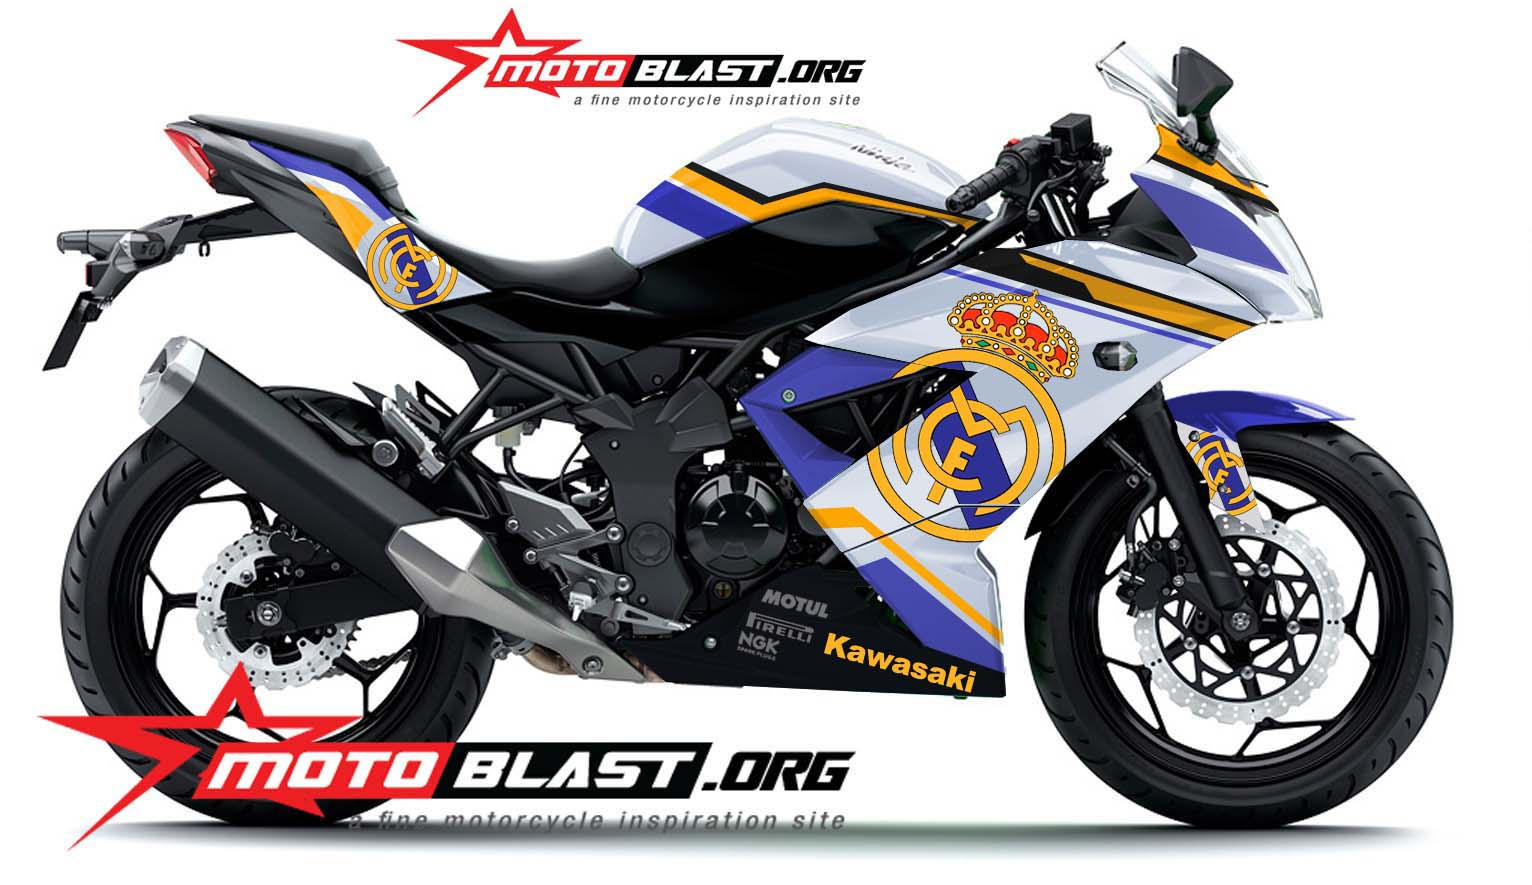 Modif Striping Kawasaki Ninja RR Mono white – Real Madrid